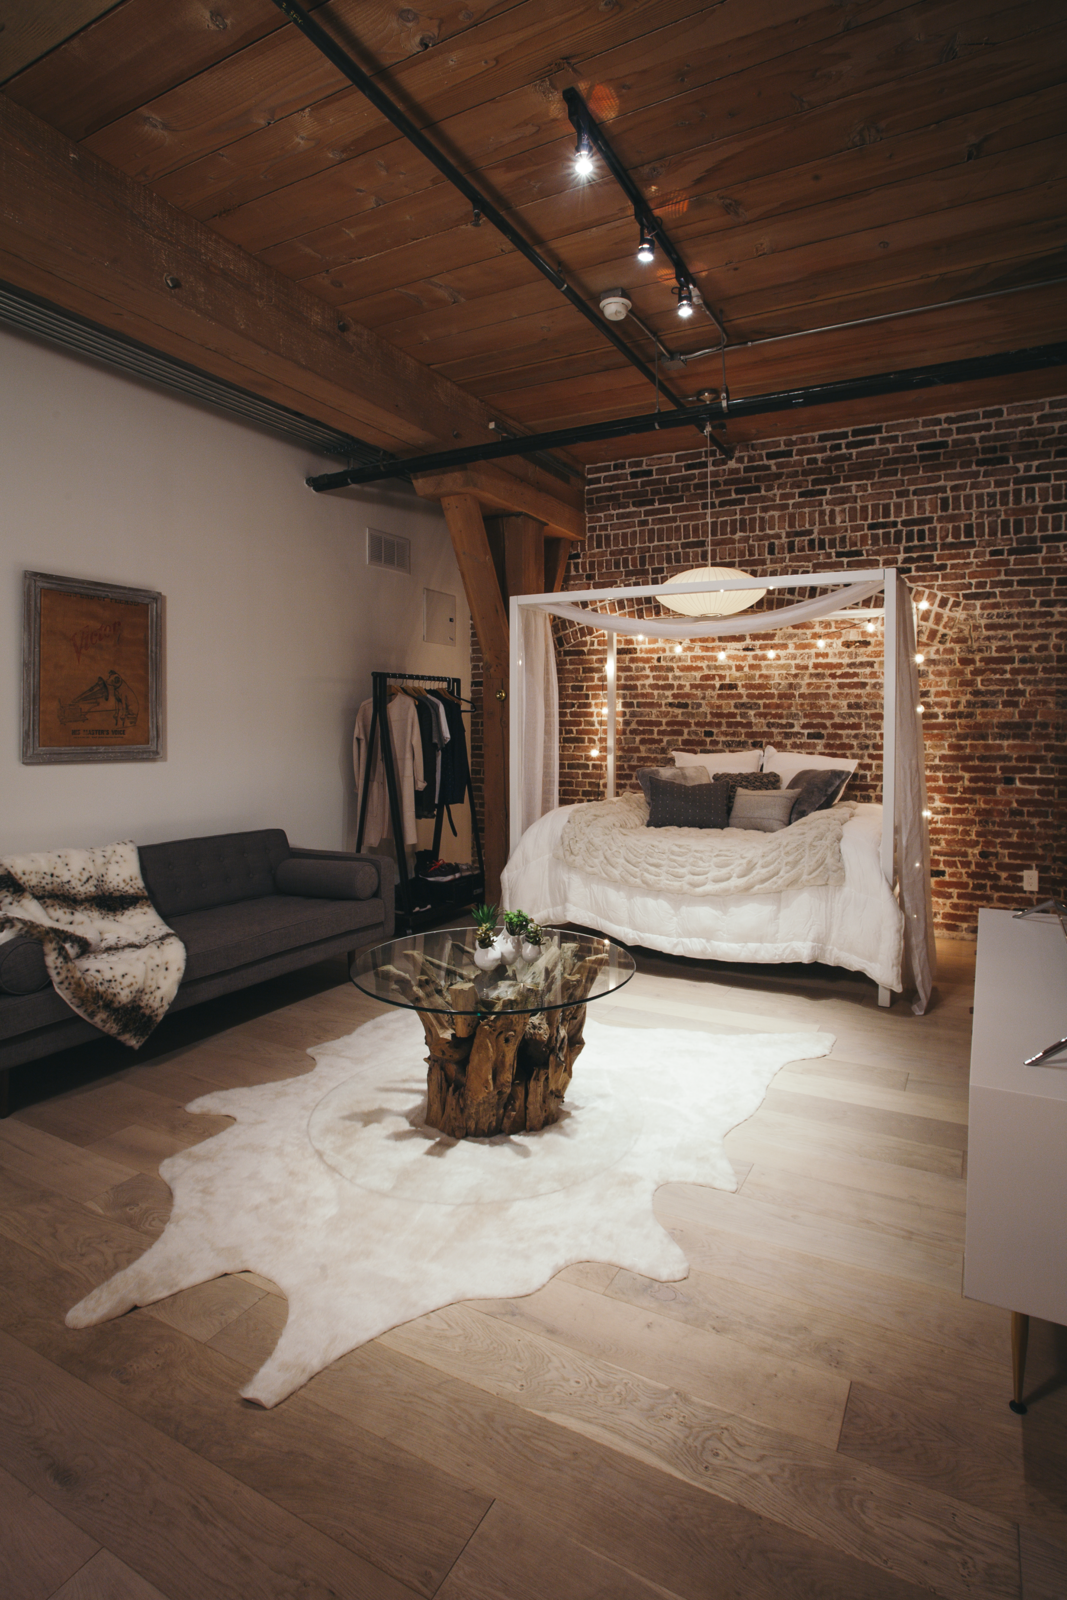 The sleeping area is tucked into the back of the loft. Says Misra of the clients, Step Inside One Couple's Game-Changing Live/Work Loft - Photo 9 of 10